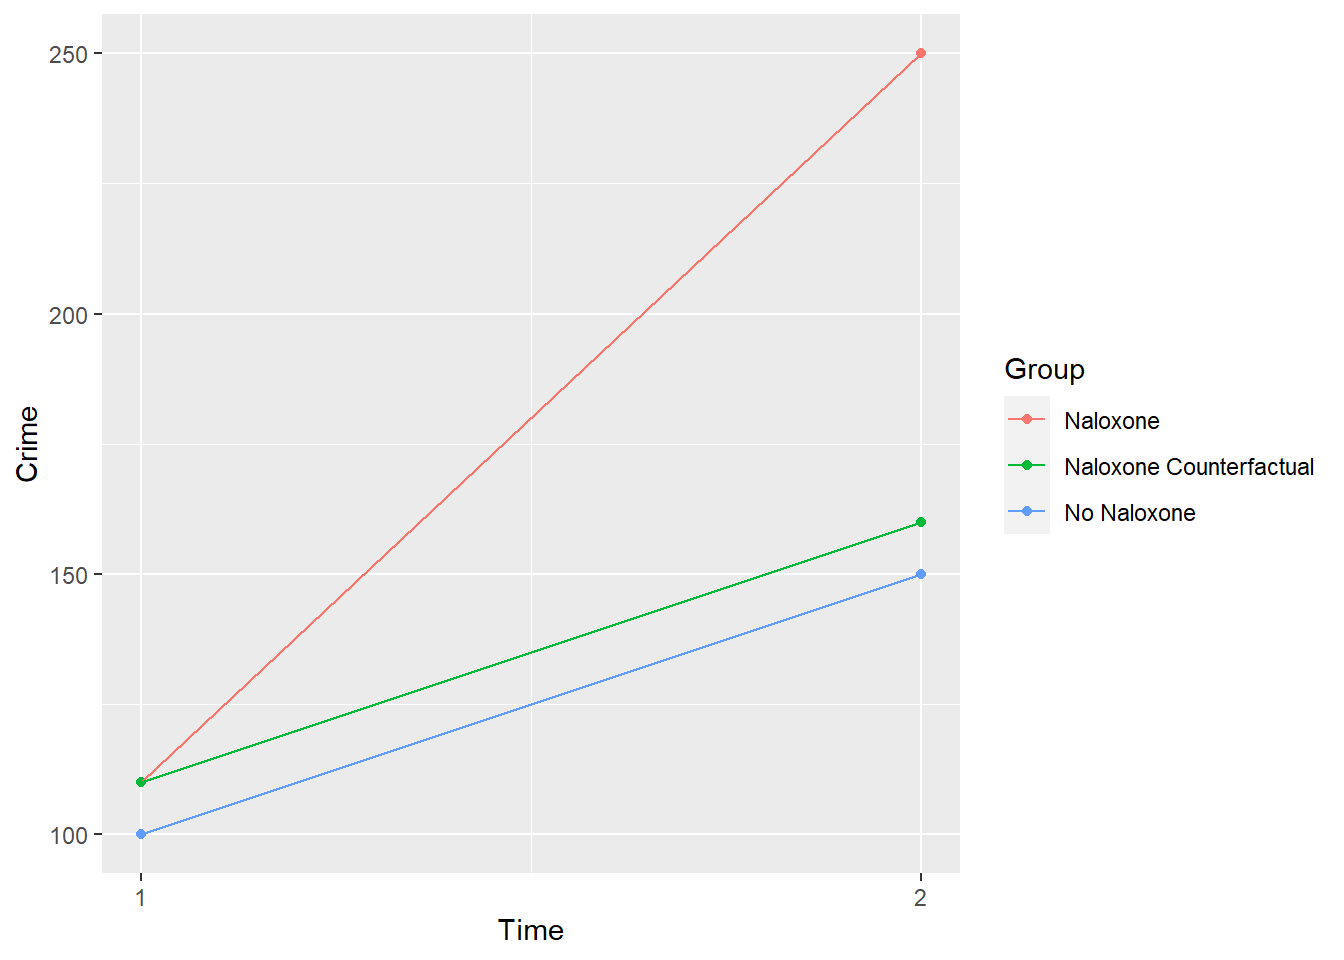 Change in Treatment between time 1 and time 2